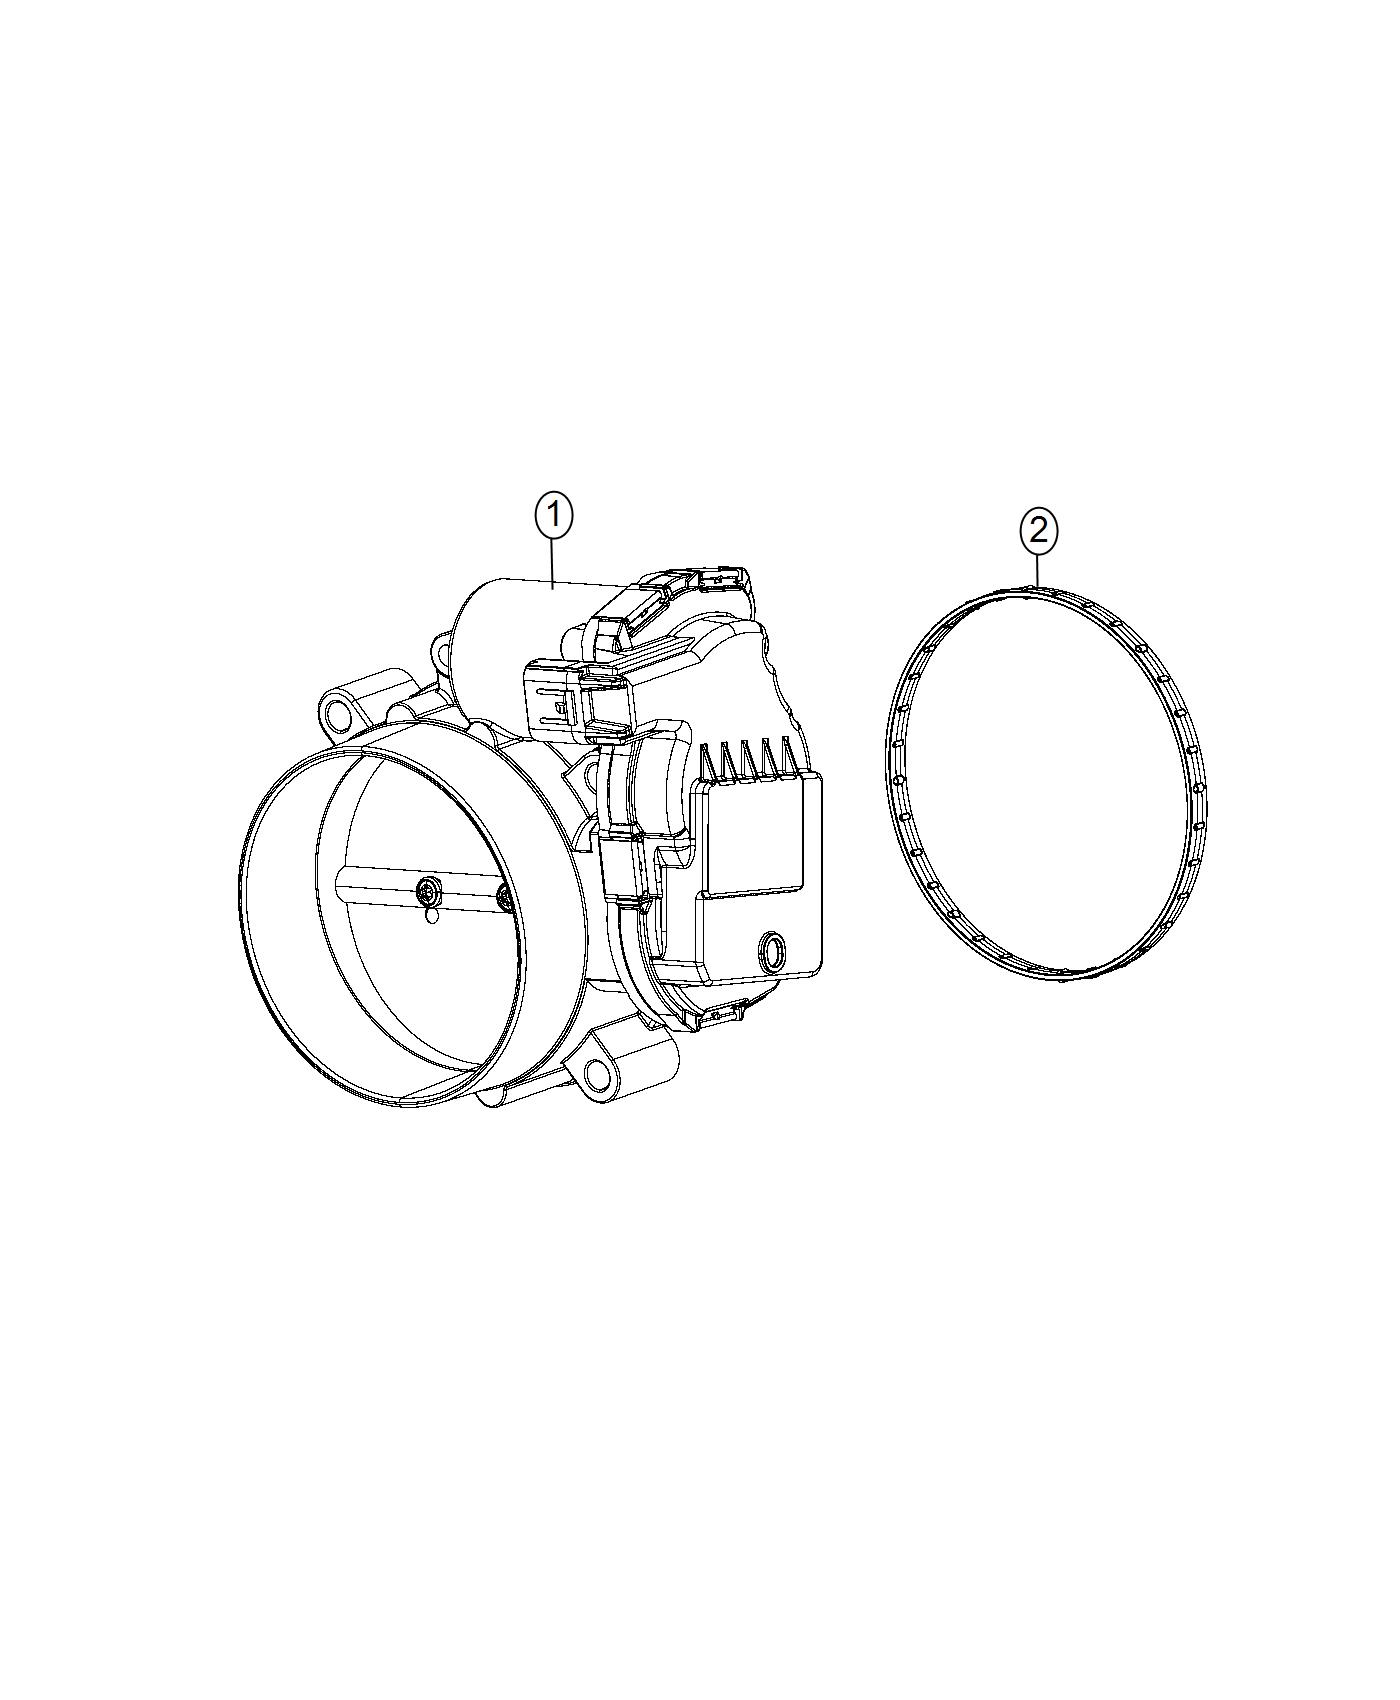 Dodge Charger Throttle Body Do Not Use Use